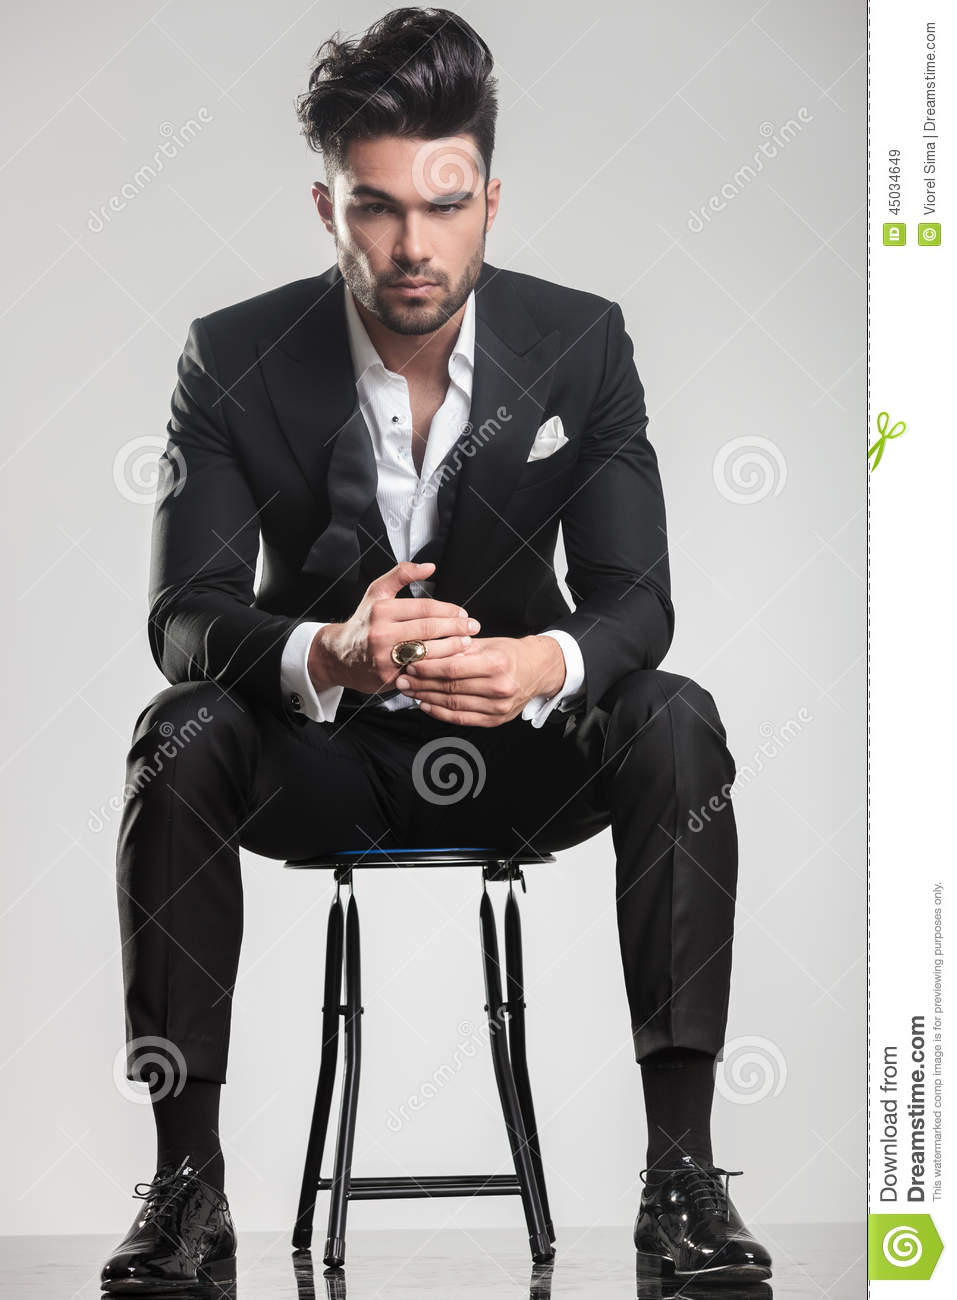 Handsome Young Man In Tuxedo Sitting On A Stool Stock ...